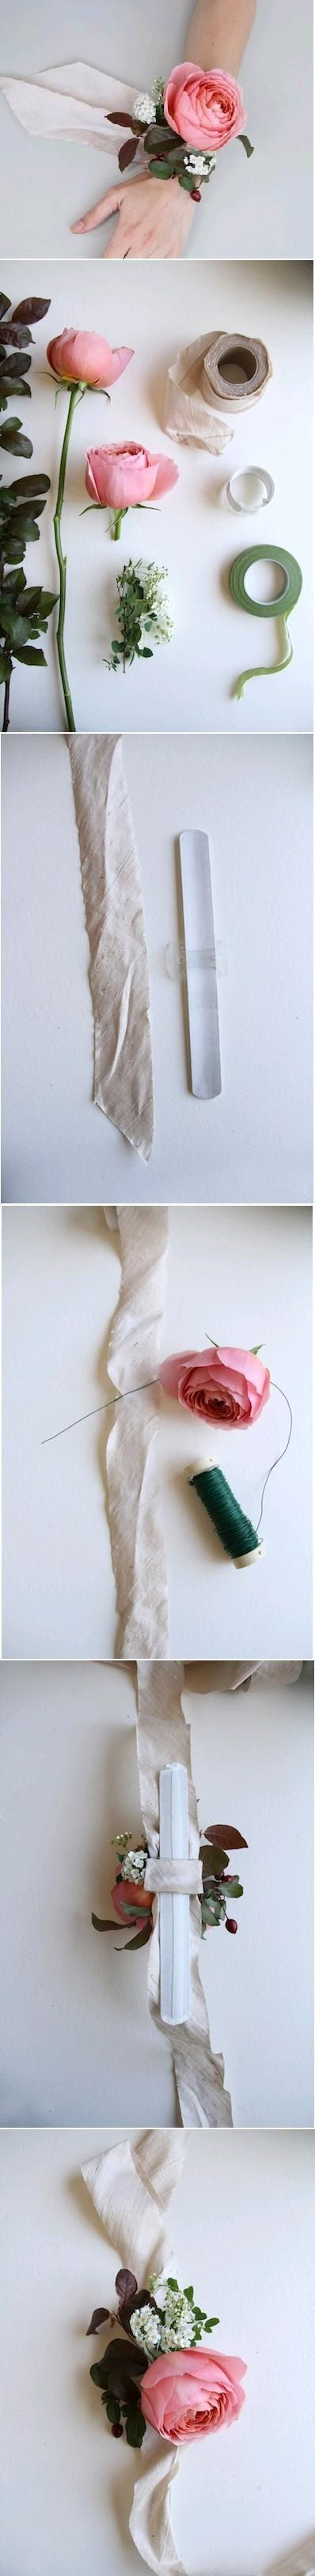 DIY Wedding Wrist Flower DIY Projects / UsefulDIY.com on imgfave